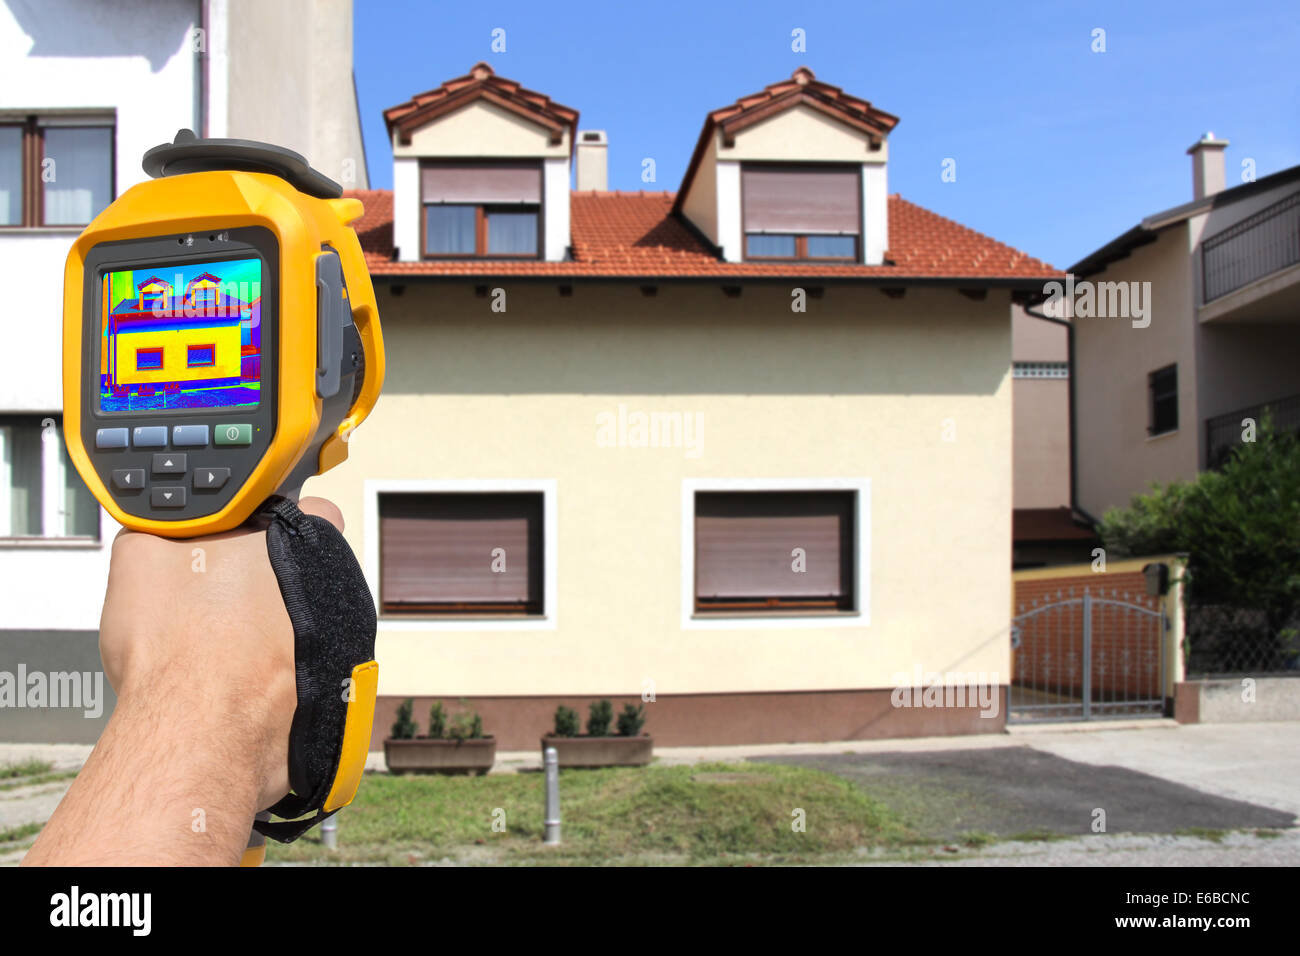 Recording Heat Loss At The House With Infrared Thermal